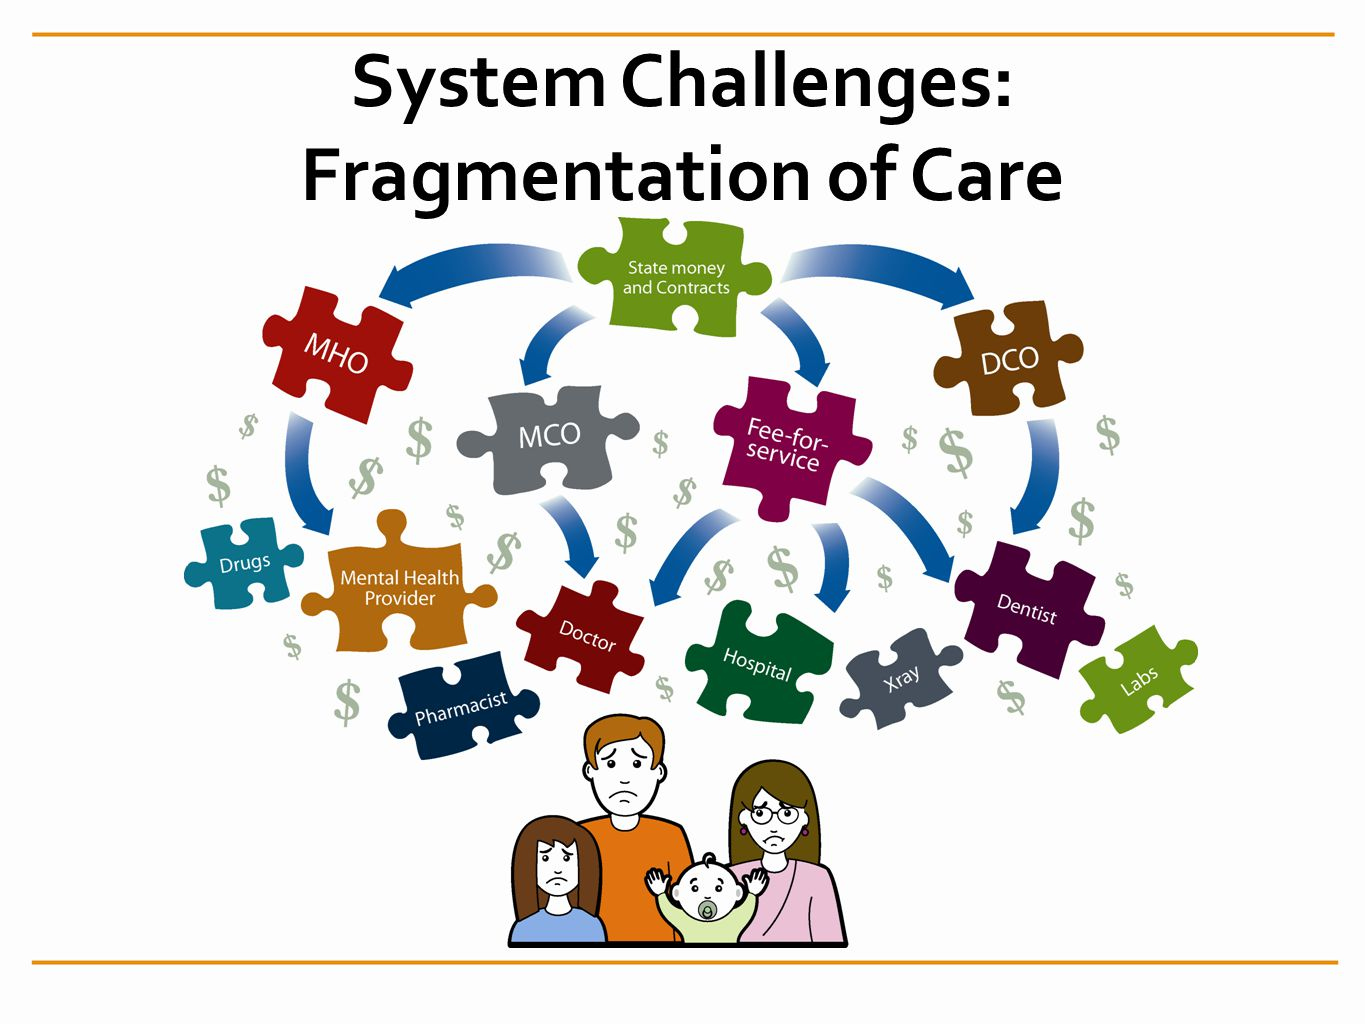 System Challenges: Fragmentation of Care